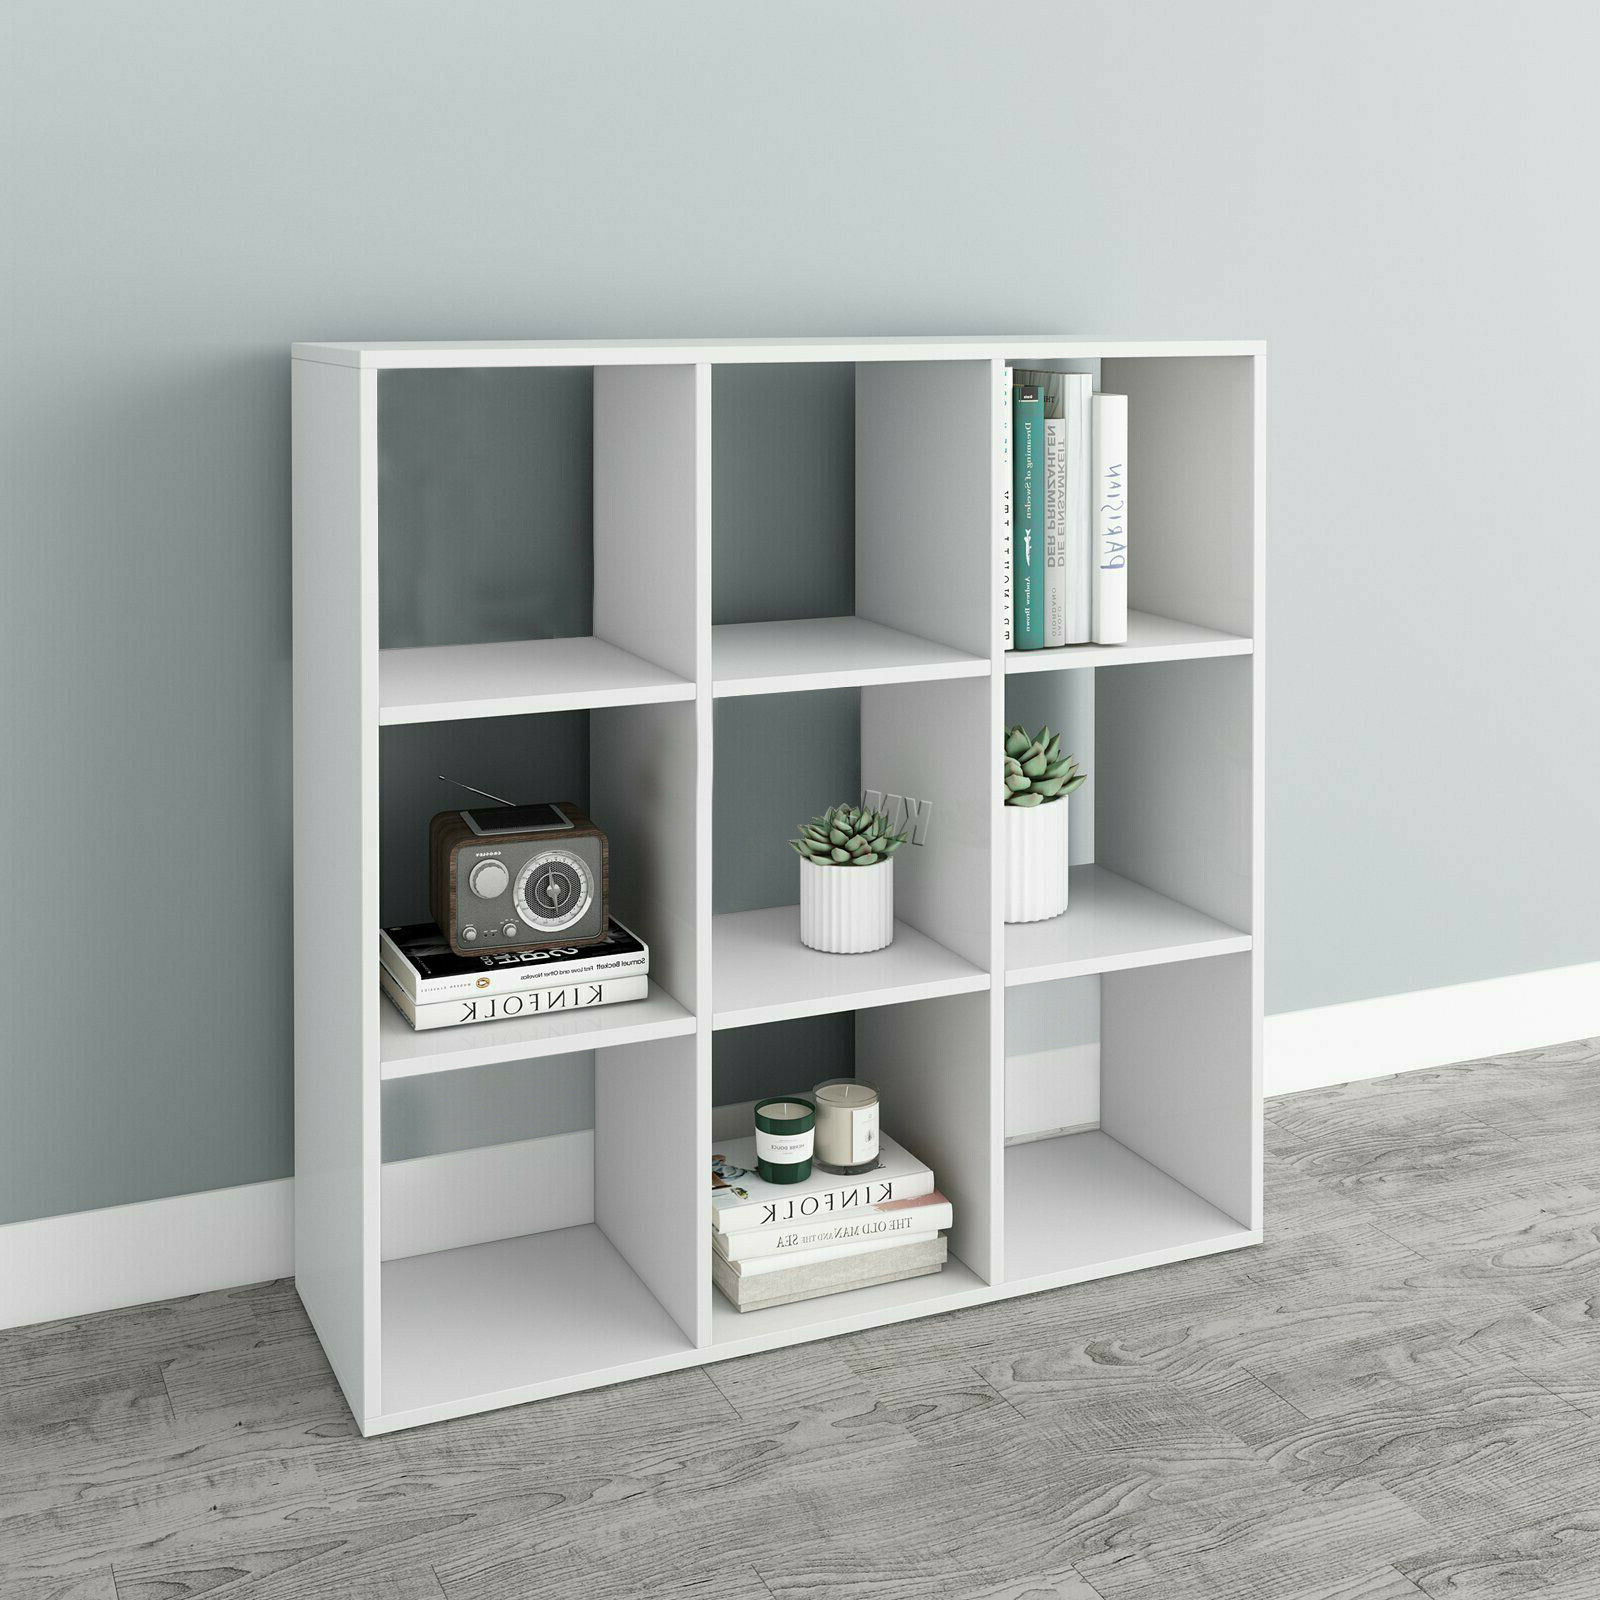 Beckett Corner Bookcases Pertaining To Well Known White 9 Cube Bookshelf Storage Shelves Office Shelving Display Rack  Bookcase Uk (Gallery 12 of 20)